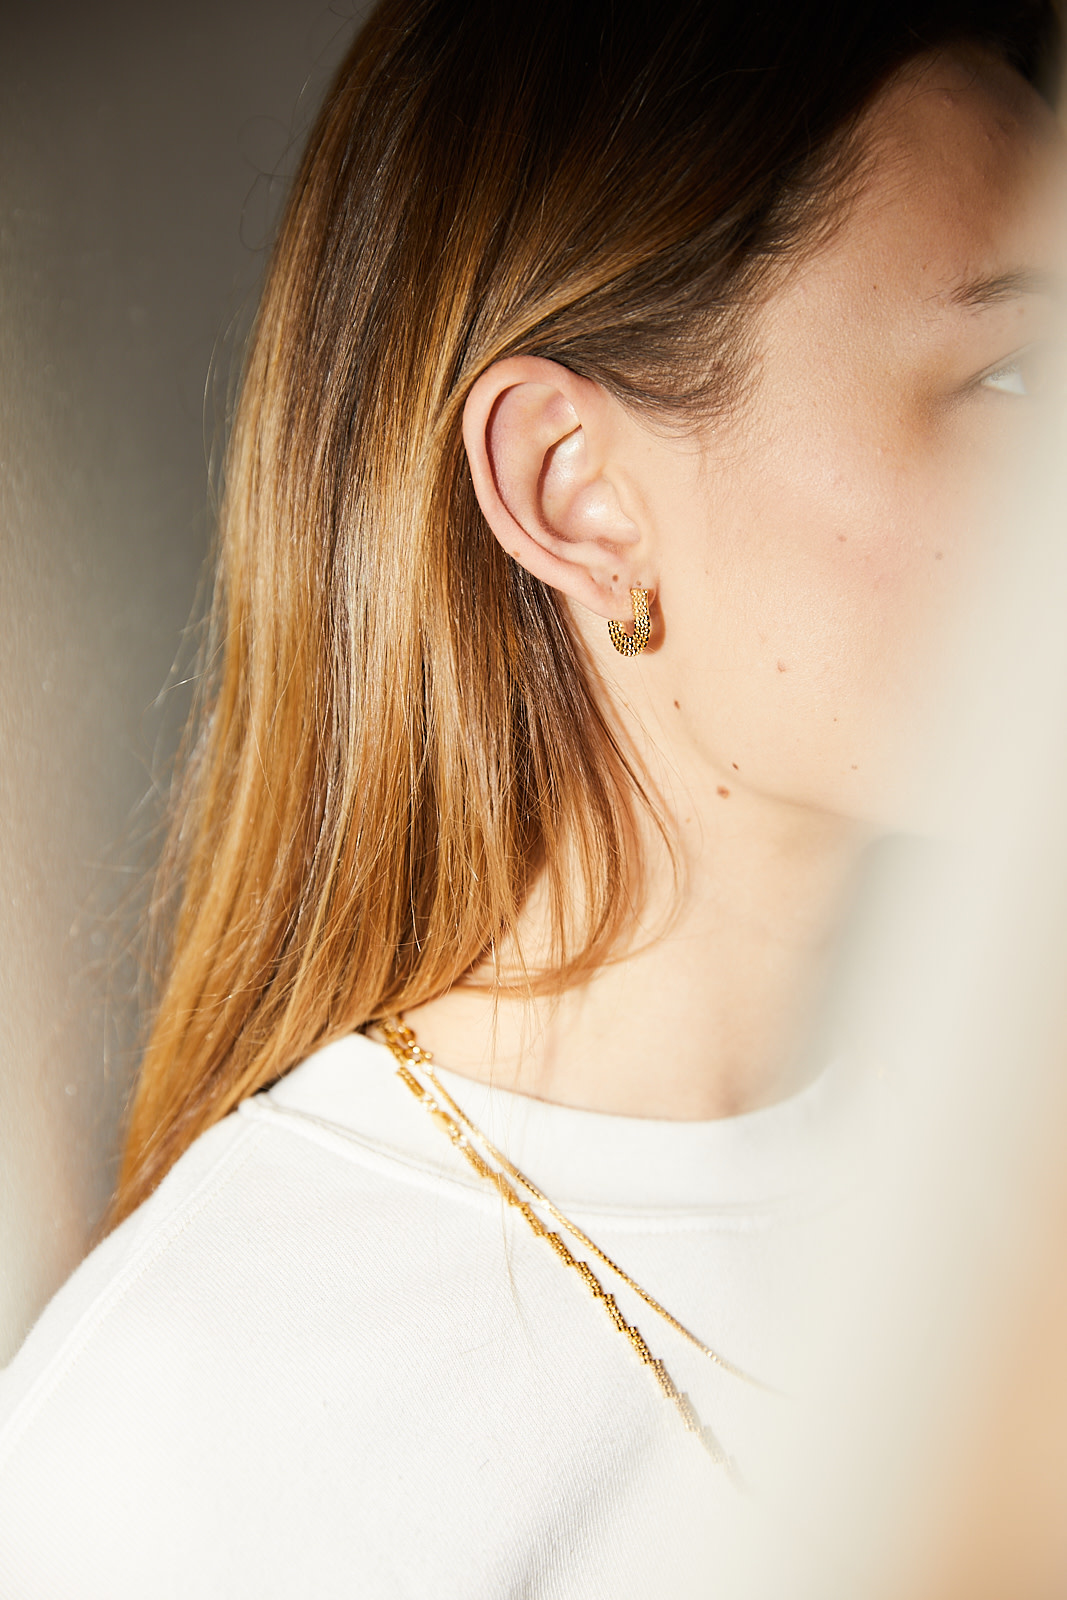 Martine Viergever Lunae earrings